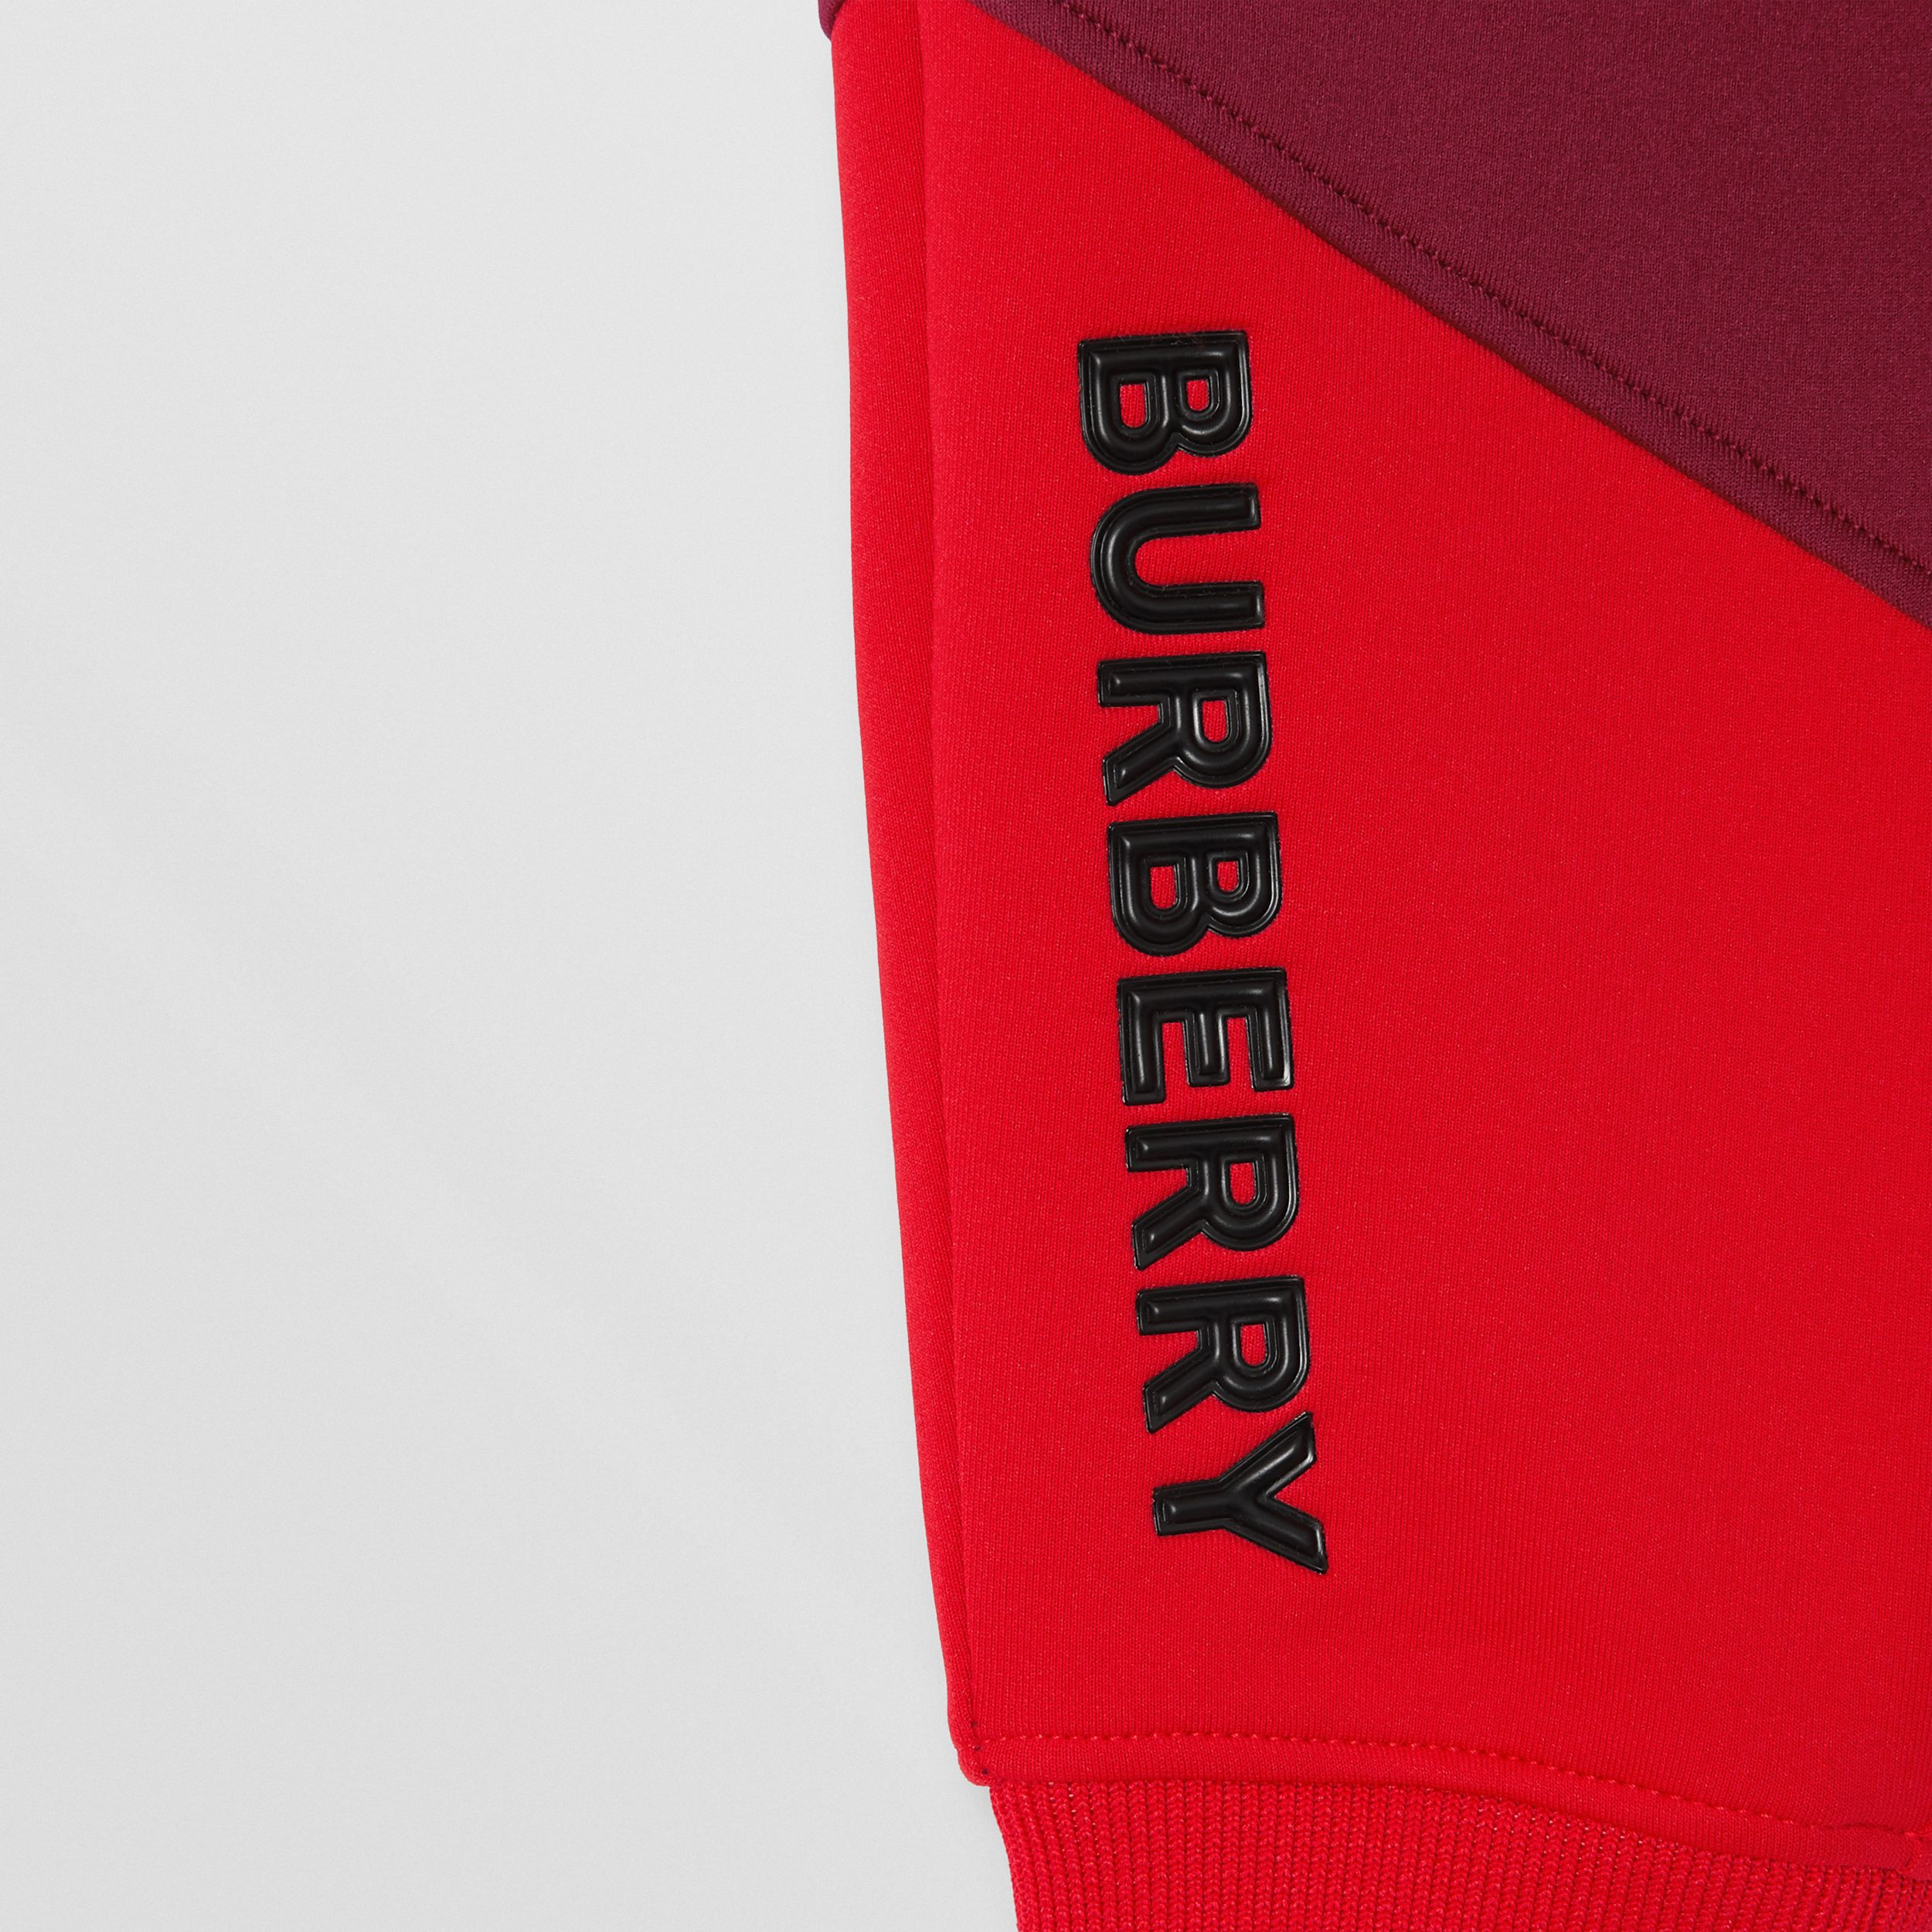 Logo Print Two-tone Stretch Jersey Jogging Pants in Dark Burgundy | Burberry Australia - 2